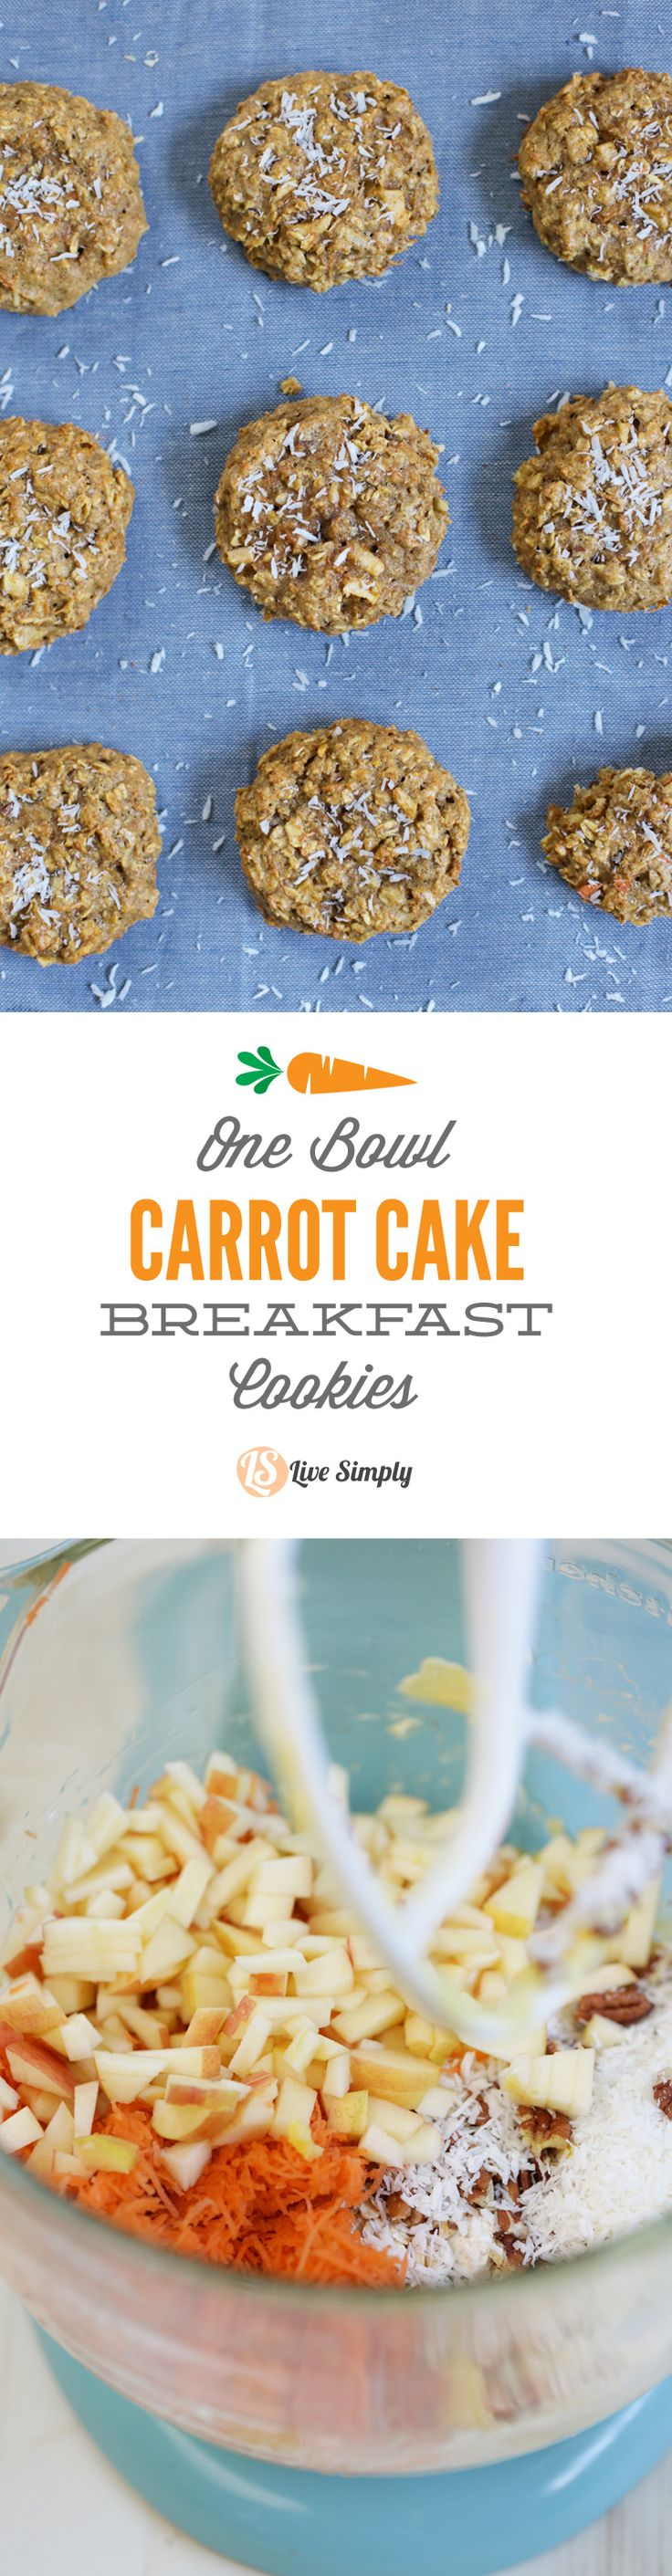 These are so good!! One bowl carrot cake breakfast cookies are made with healthy ingredients and can be stored in the freezer for a super easy breakfast. I love to serve these to my family with smoothies on super busy mornings.